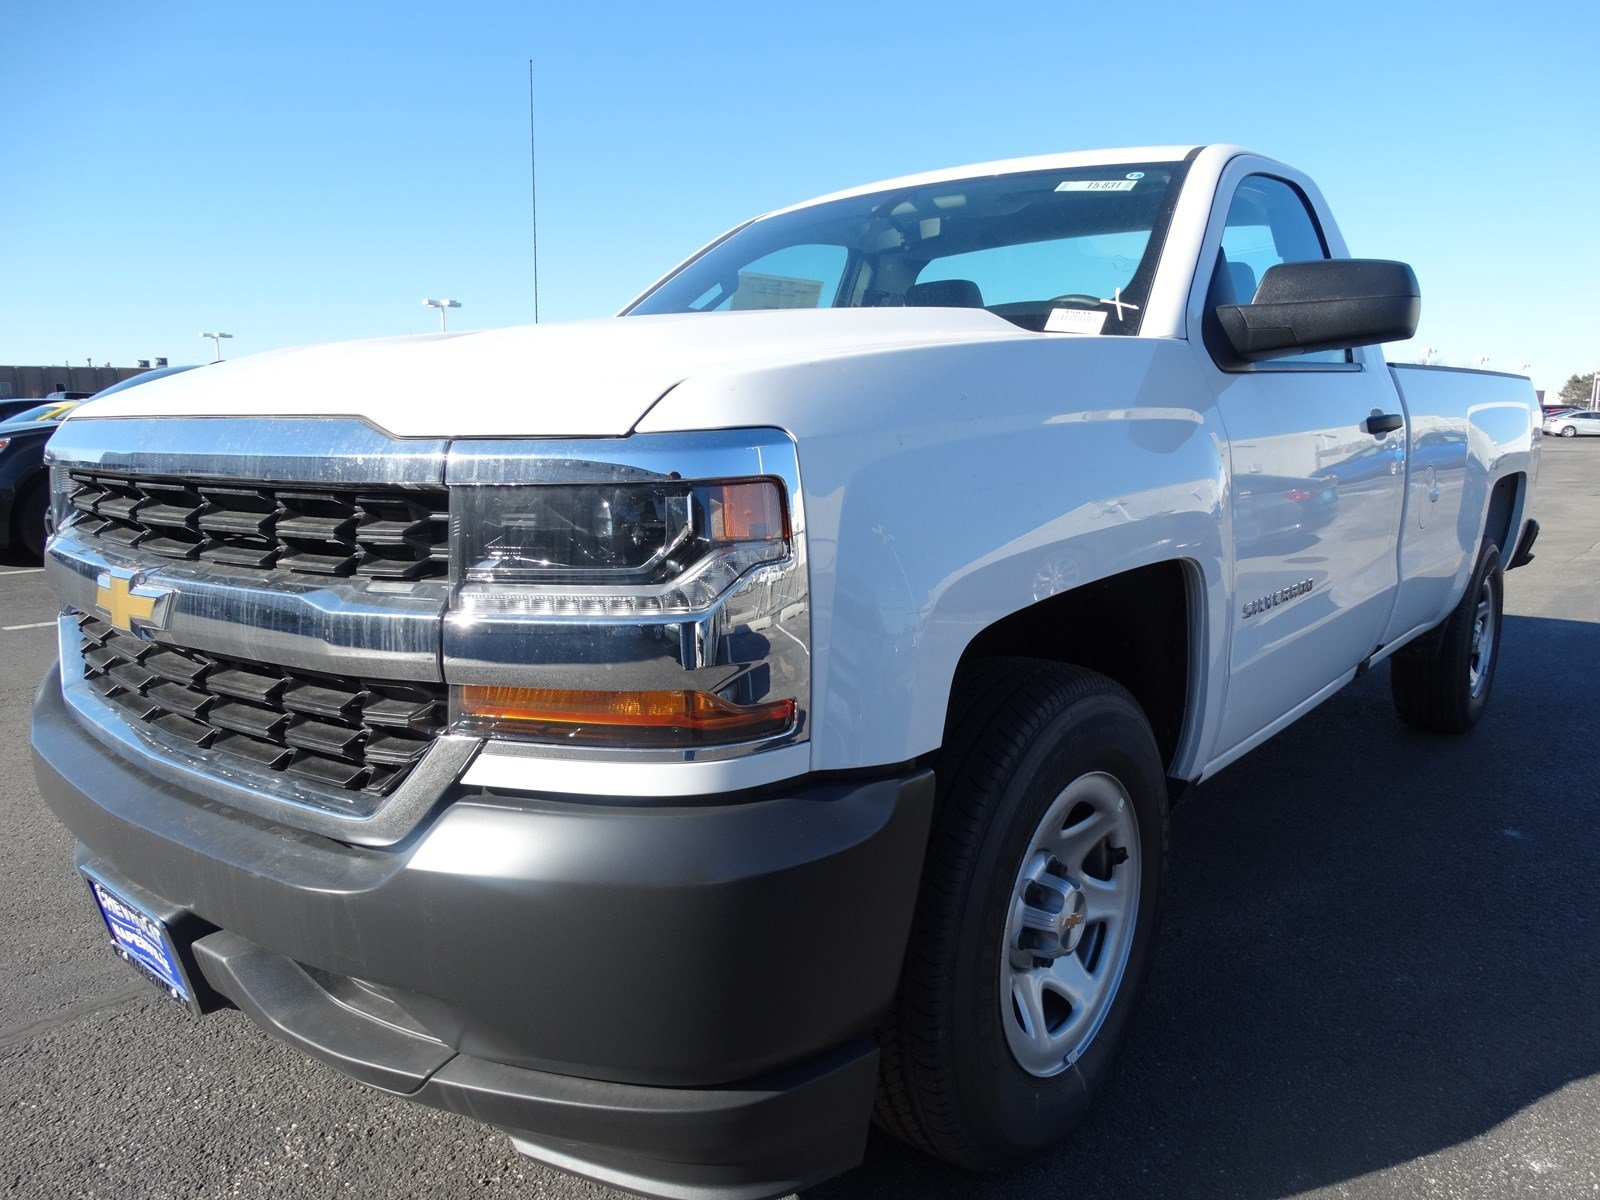 new 2017 chevrolet silverado 1500 regular cab pickup in naperville t5831 chevrolet of naperville. Black Bedroom Furniture Sets. Home Design Ideas